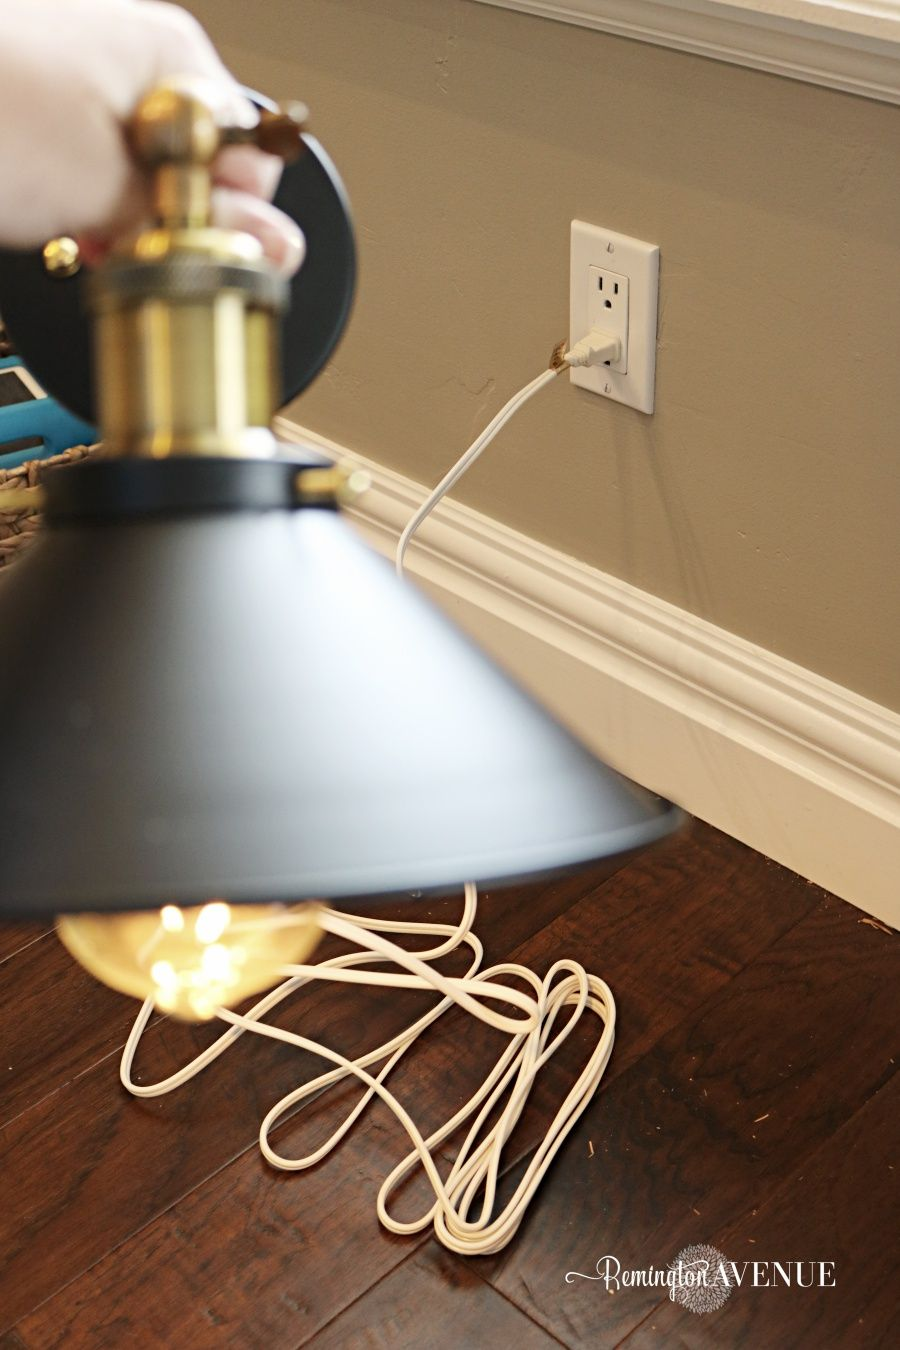 How To Turn A Hard Wire Light Fixture Into A Plug In Manual Guide